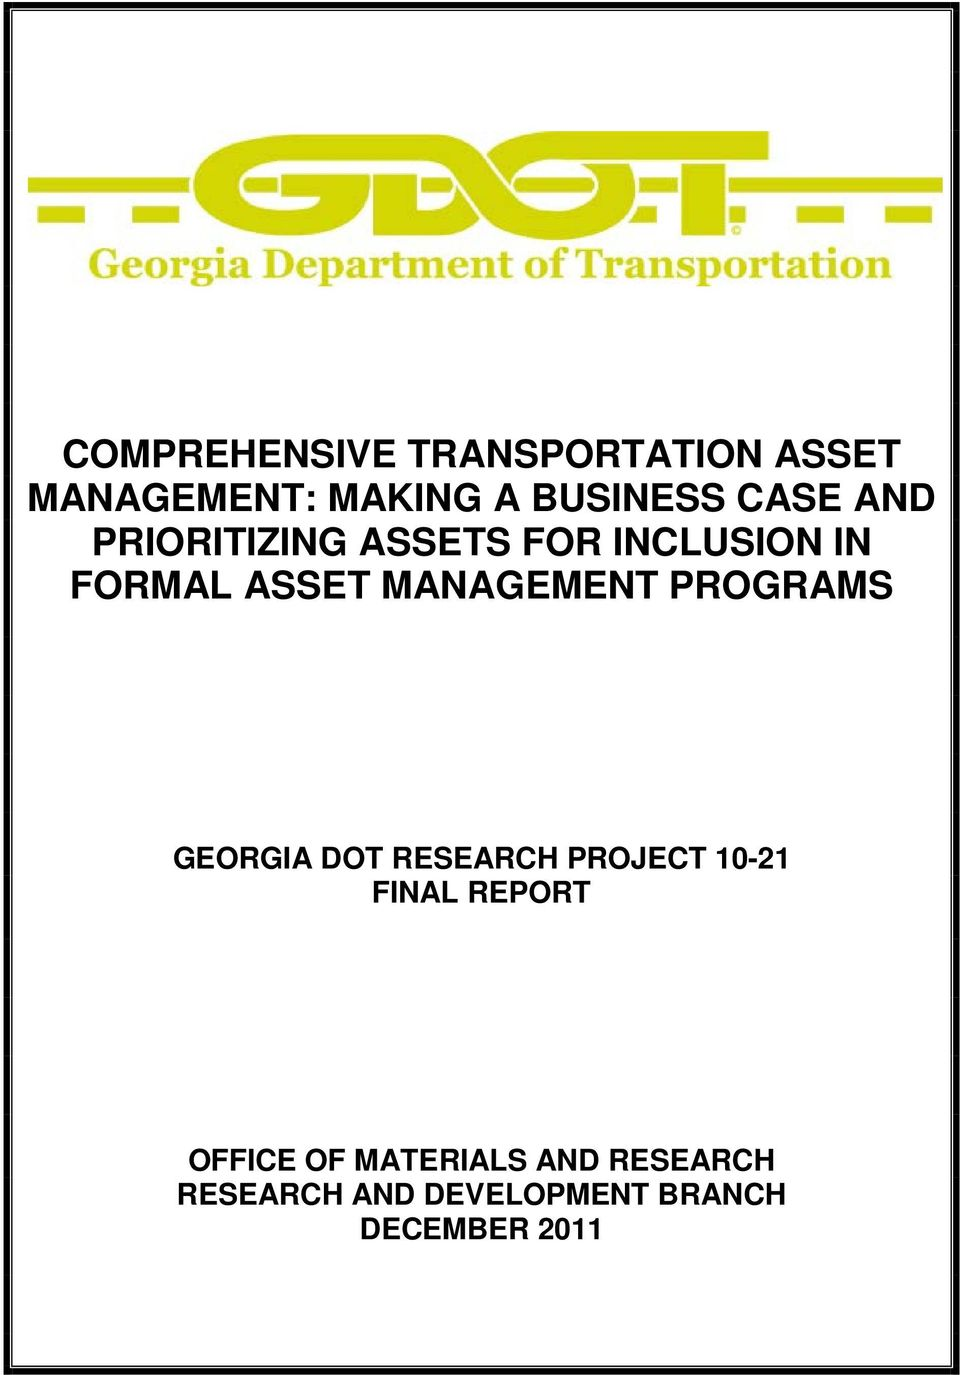 MANAGEMENT PROGRAMS GEORGIA DOT RESEARCH PROJECT 10-21 FINAL REPORT